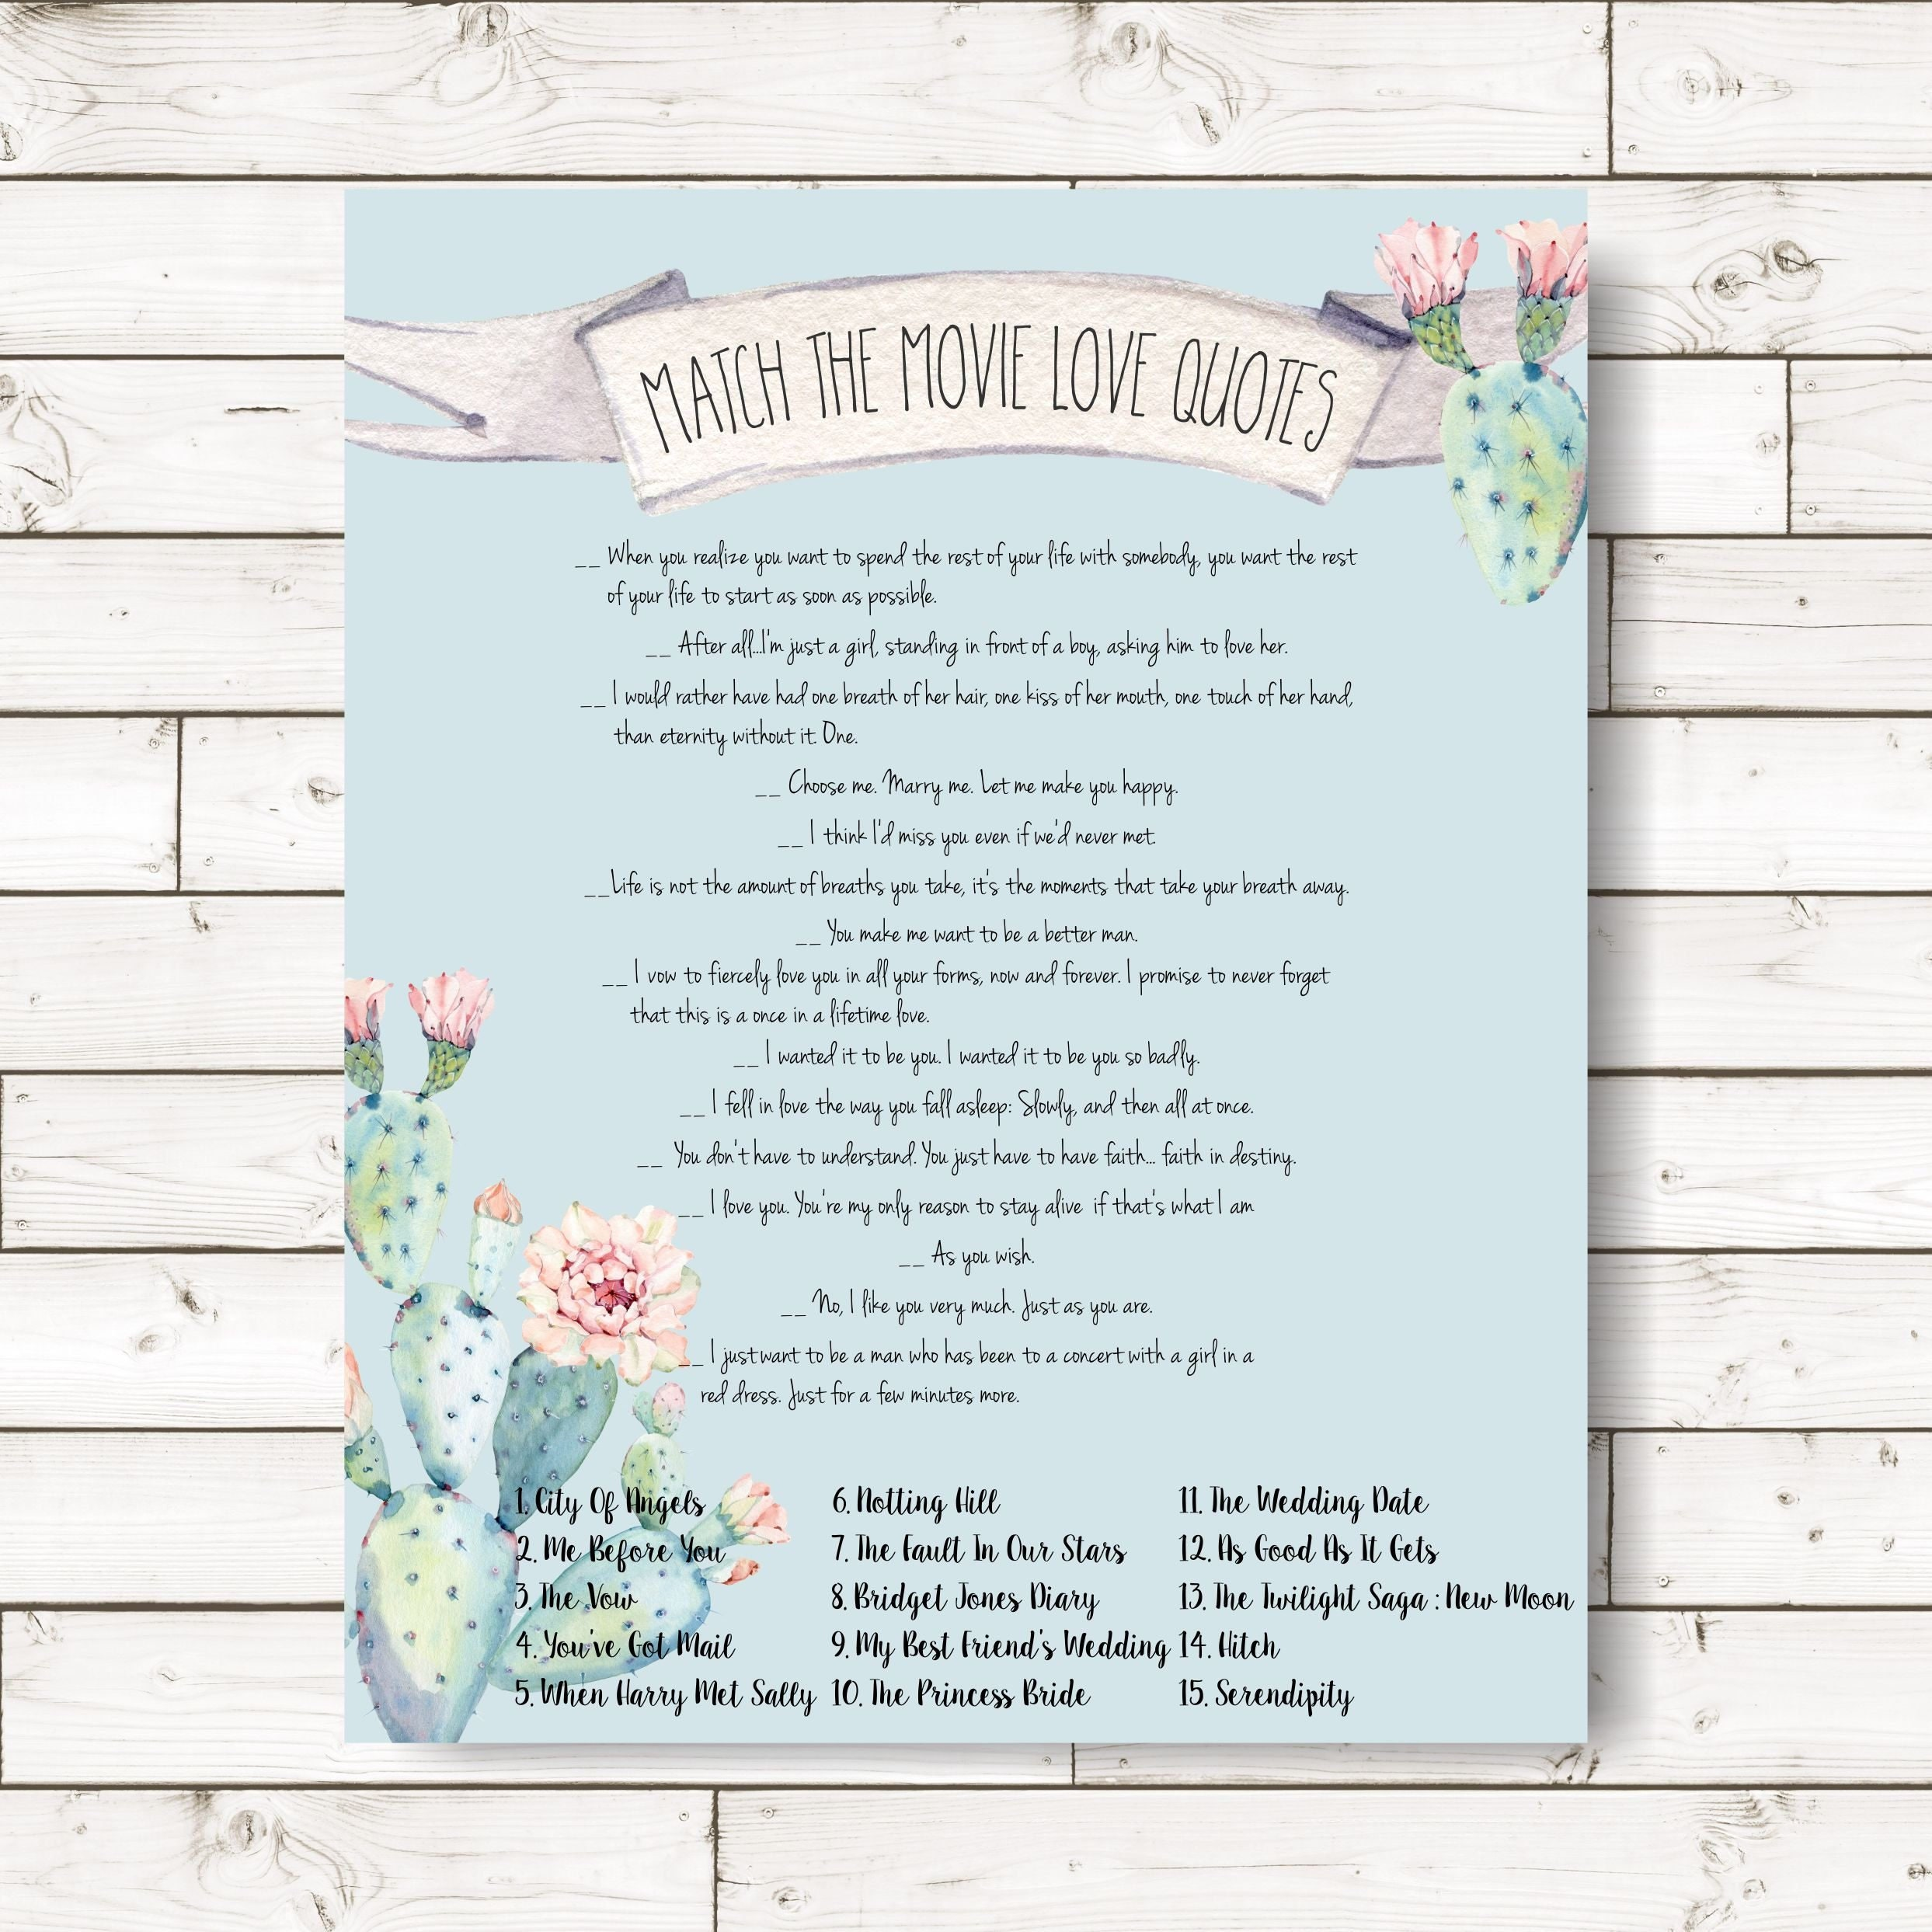 Match Movie Quotes Bridal Shower Games Cactus Hen Party Etsy